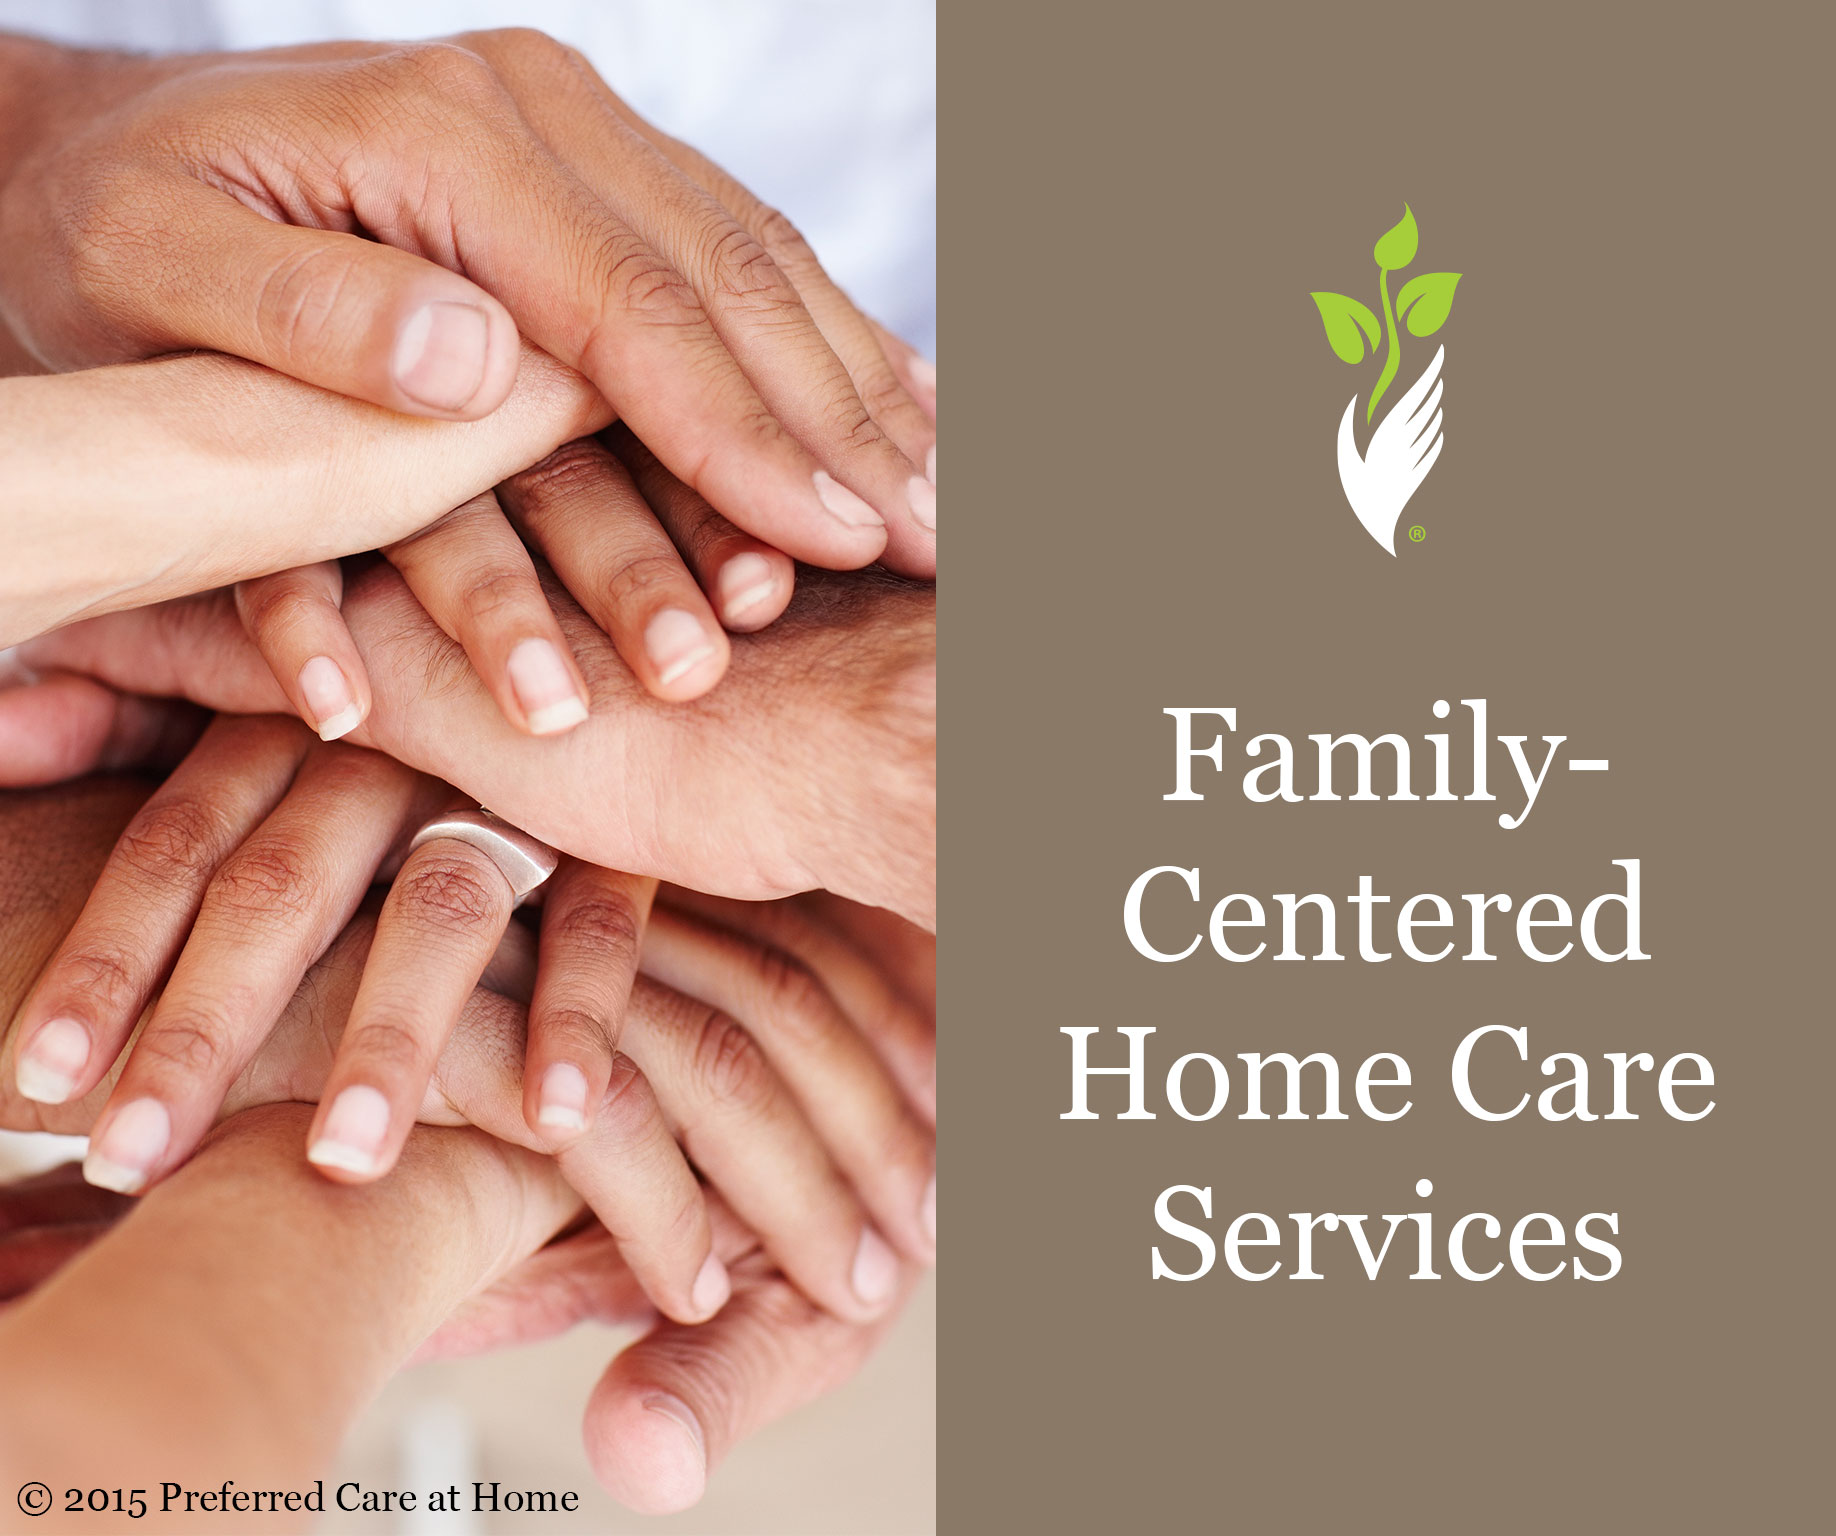 Family-Centered Home Care Services